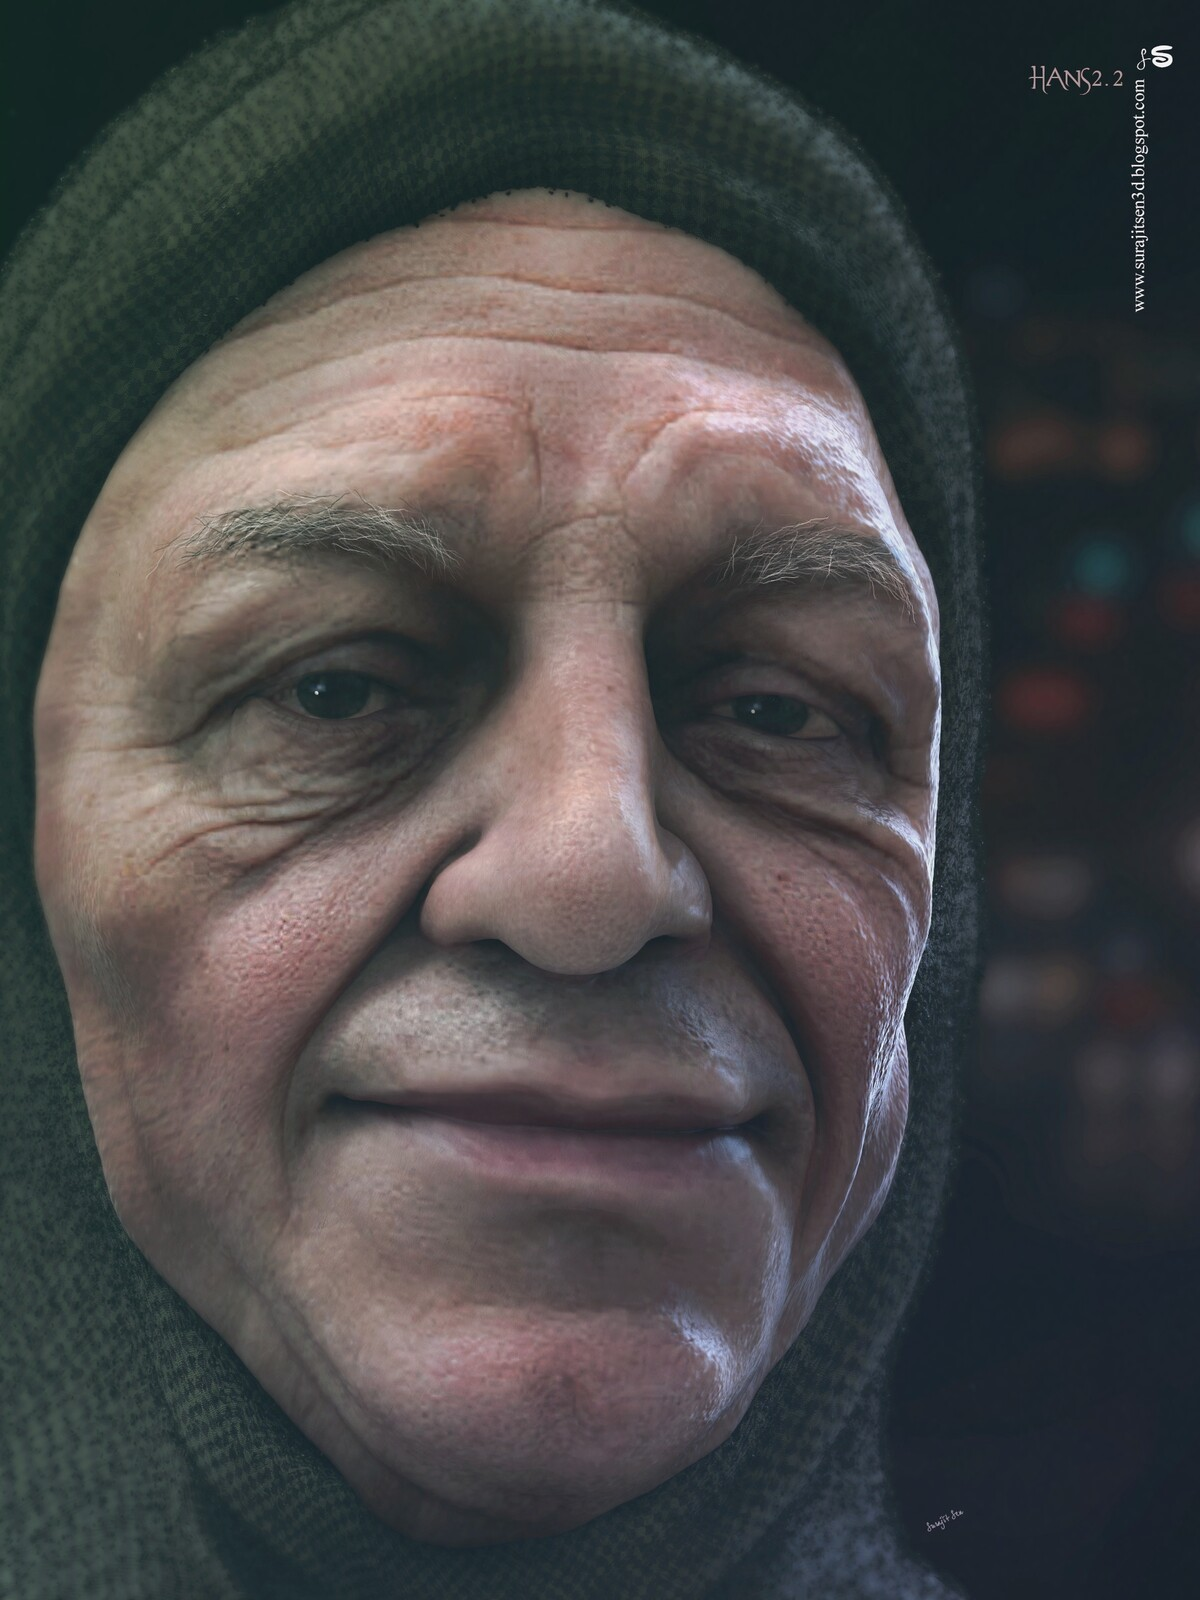 Hans2.2 One of my free time r&d works. CG Character. Background music- #hanszimmermusic